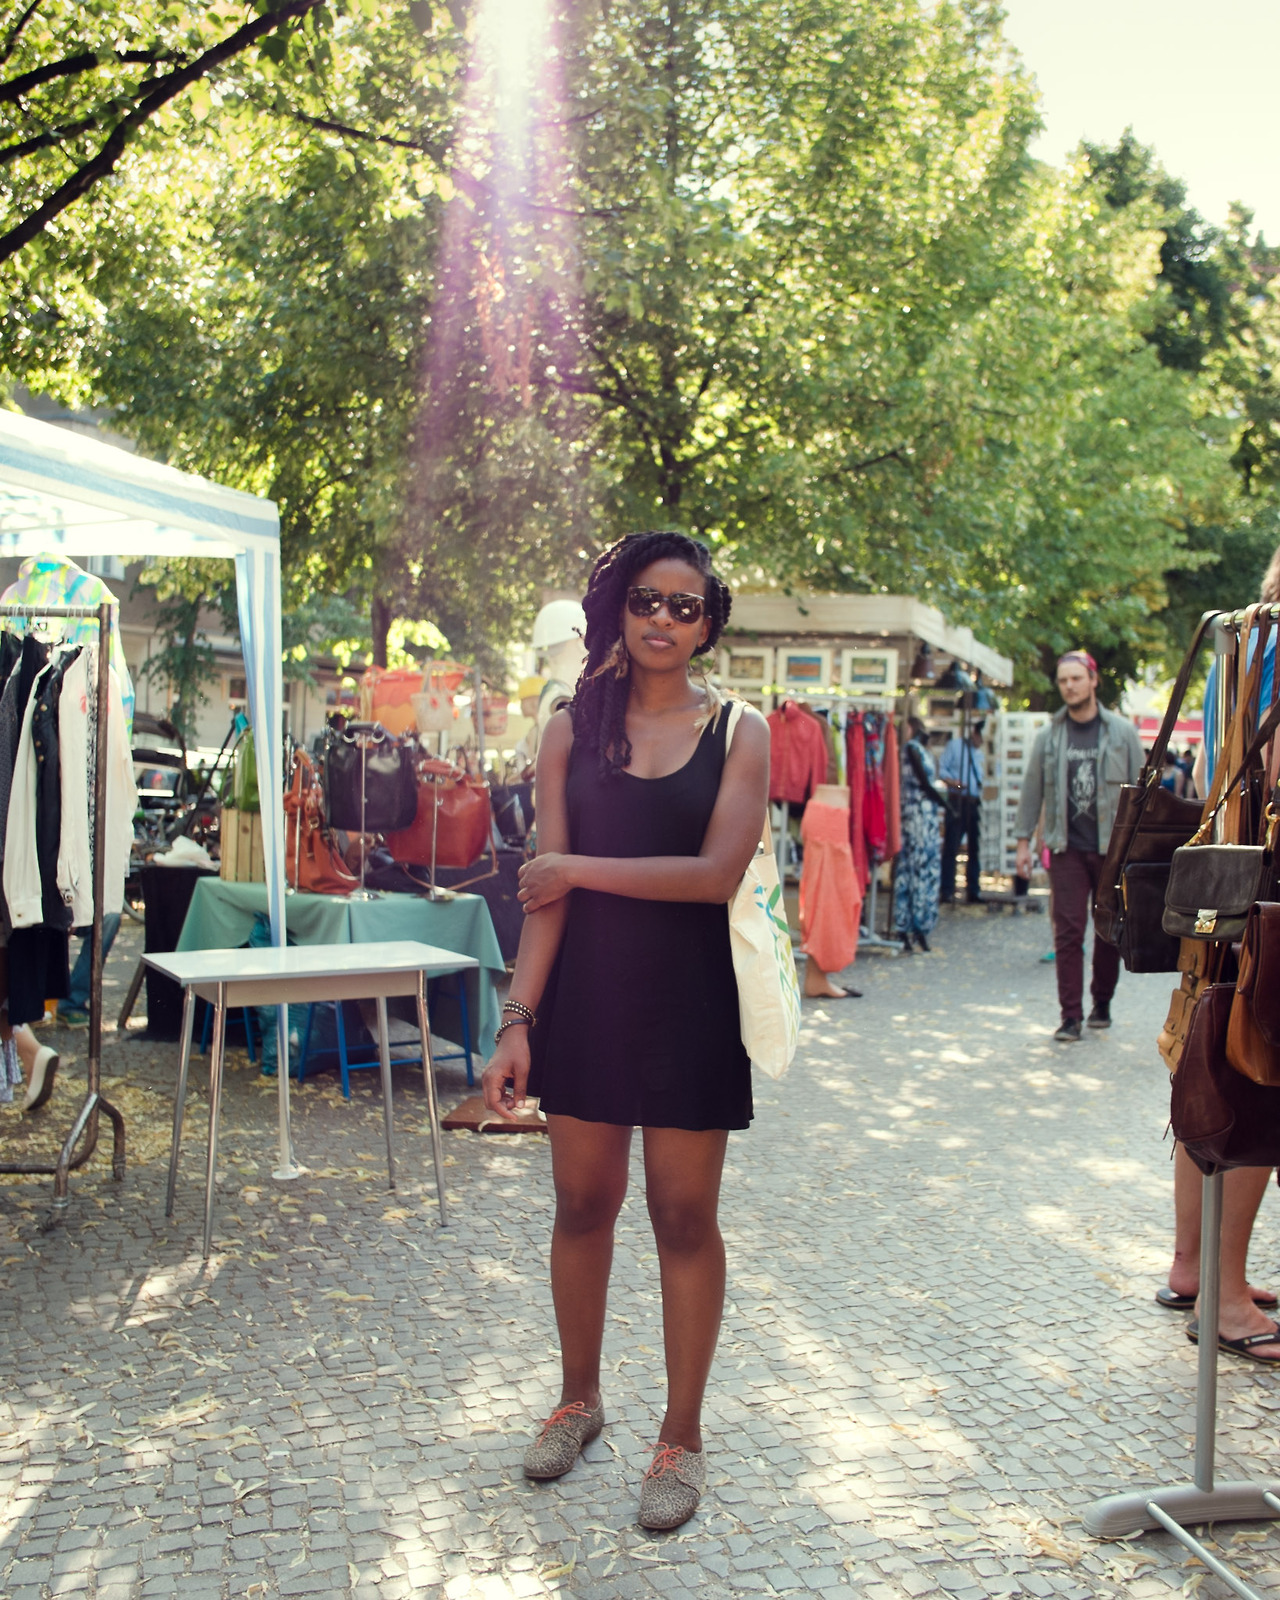 @marciaann in her new shades from the Boxhagener Platz Flea Market